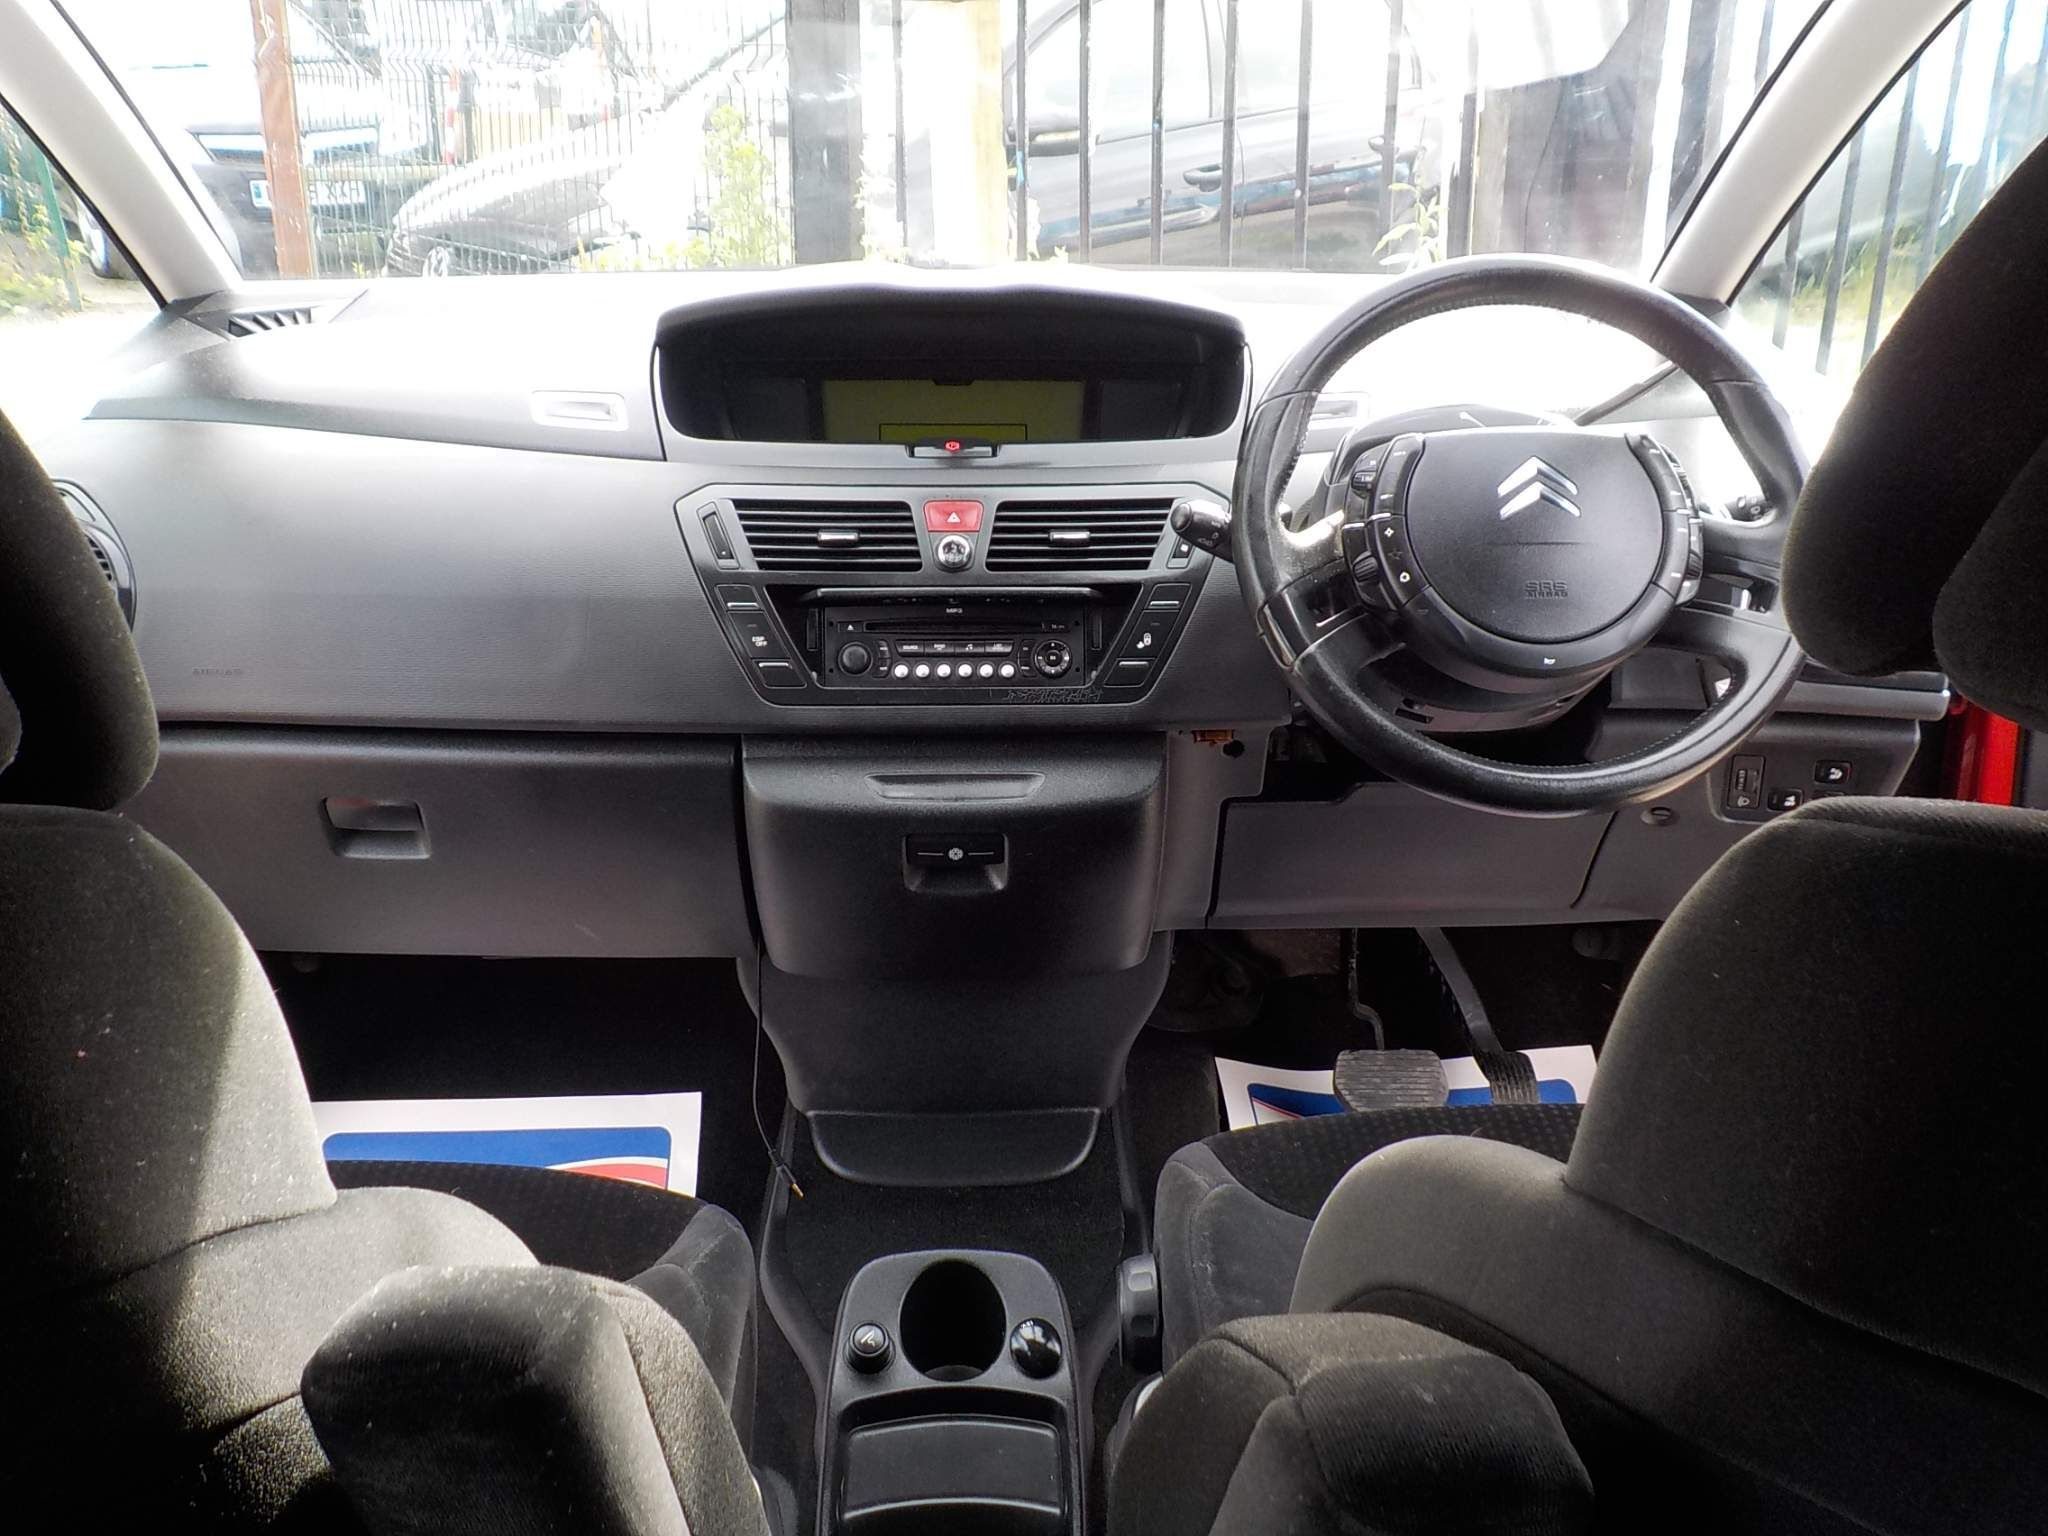 Citroen Grand C4 Picasso 1.6 HDi 16v Exclusive EGS 5dr